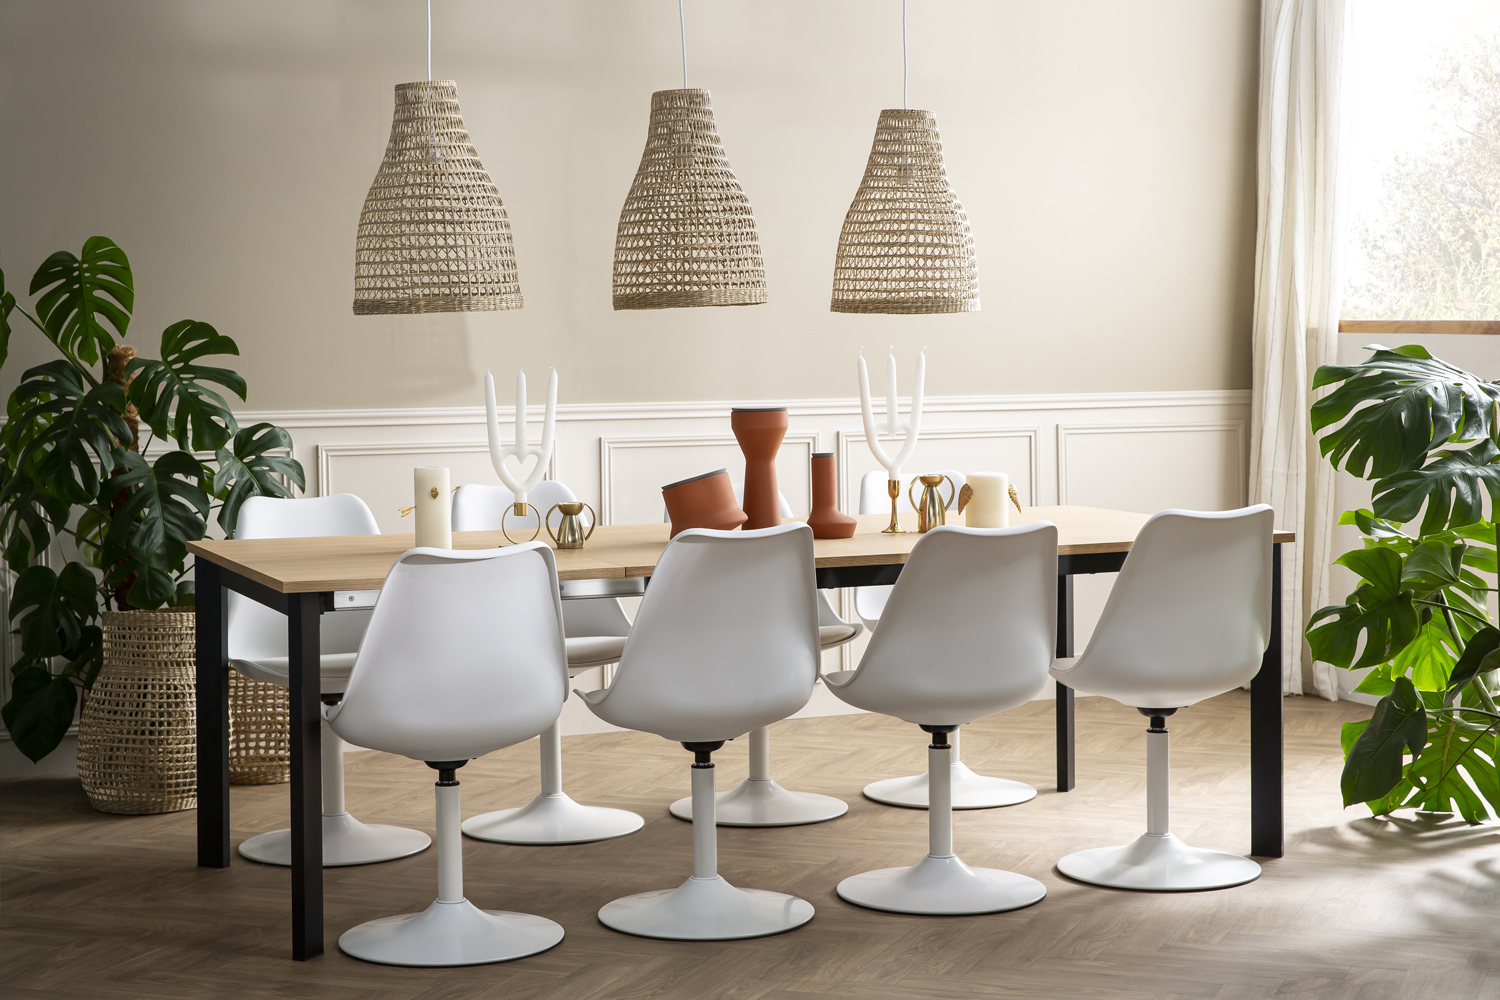 tables-chaises-bons-accords